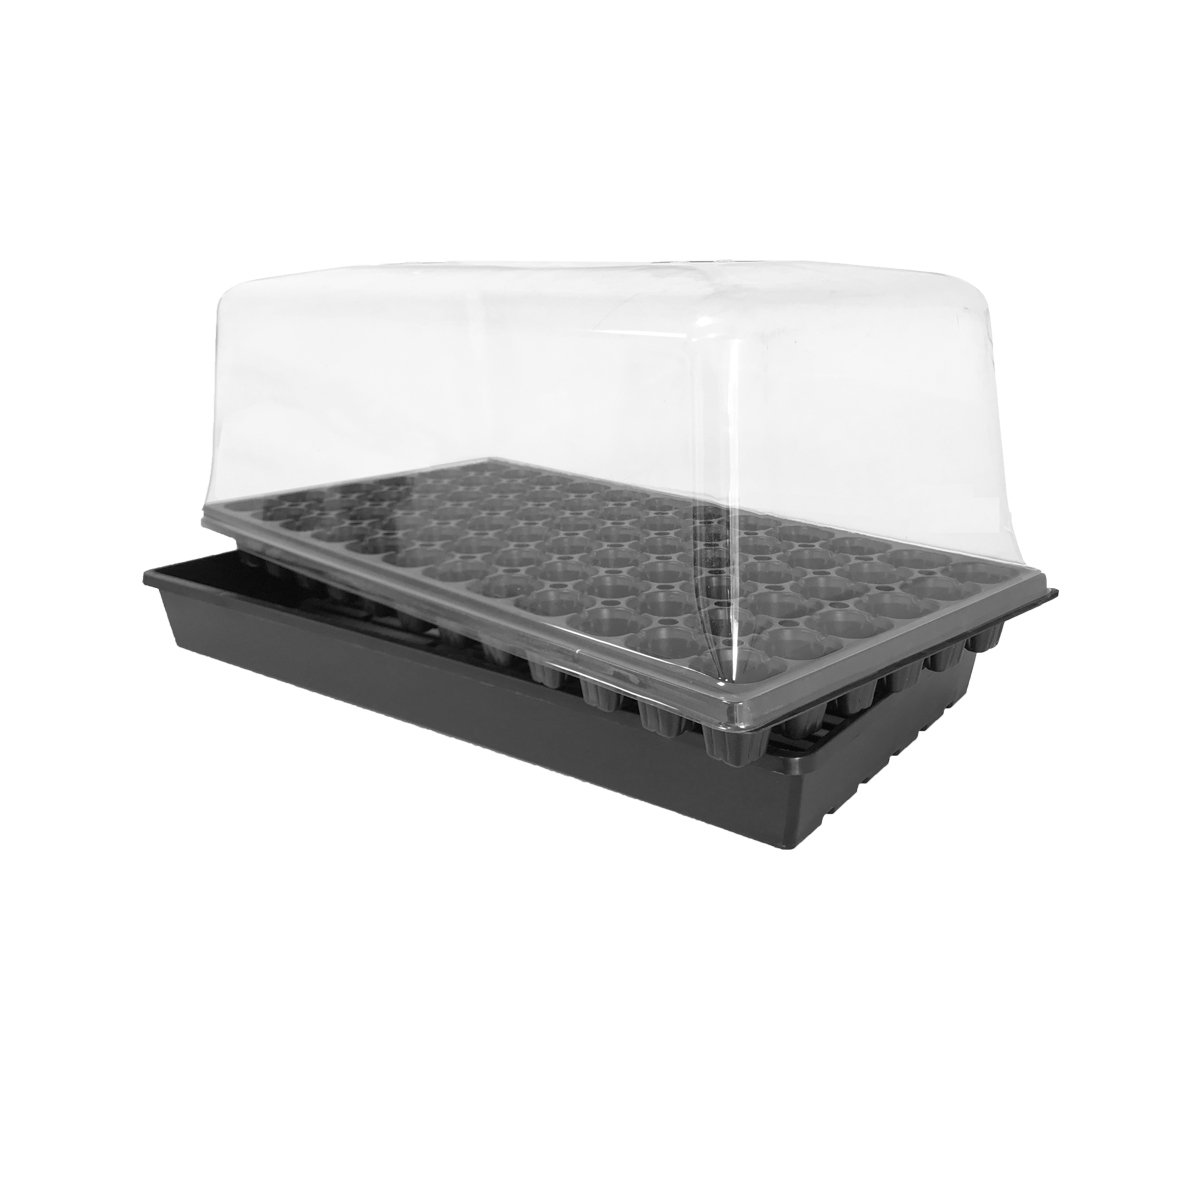 Oppolite 2-Pack 10' x 20' Seedling Starter Kit Tray(7' Humidity Dome+72 cell Tray-Flat Tray)Propagation Kit for Indoor seedling Plant Growing (2-Pack)